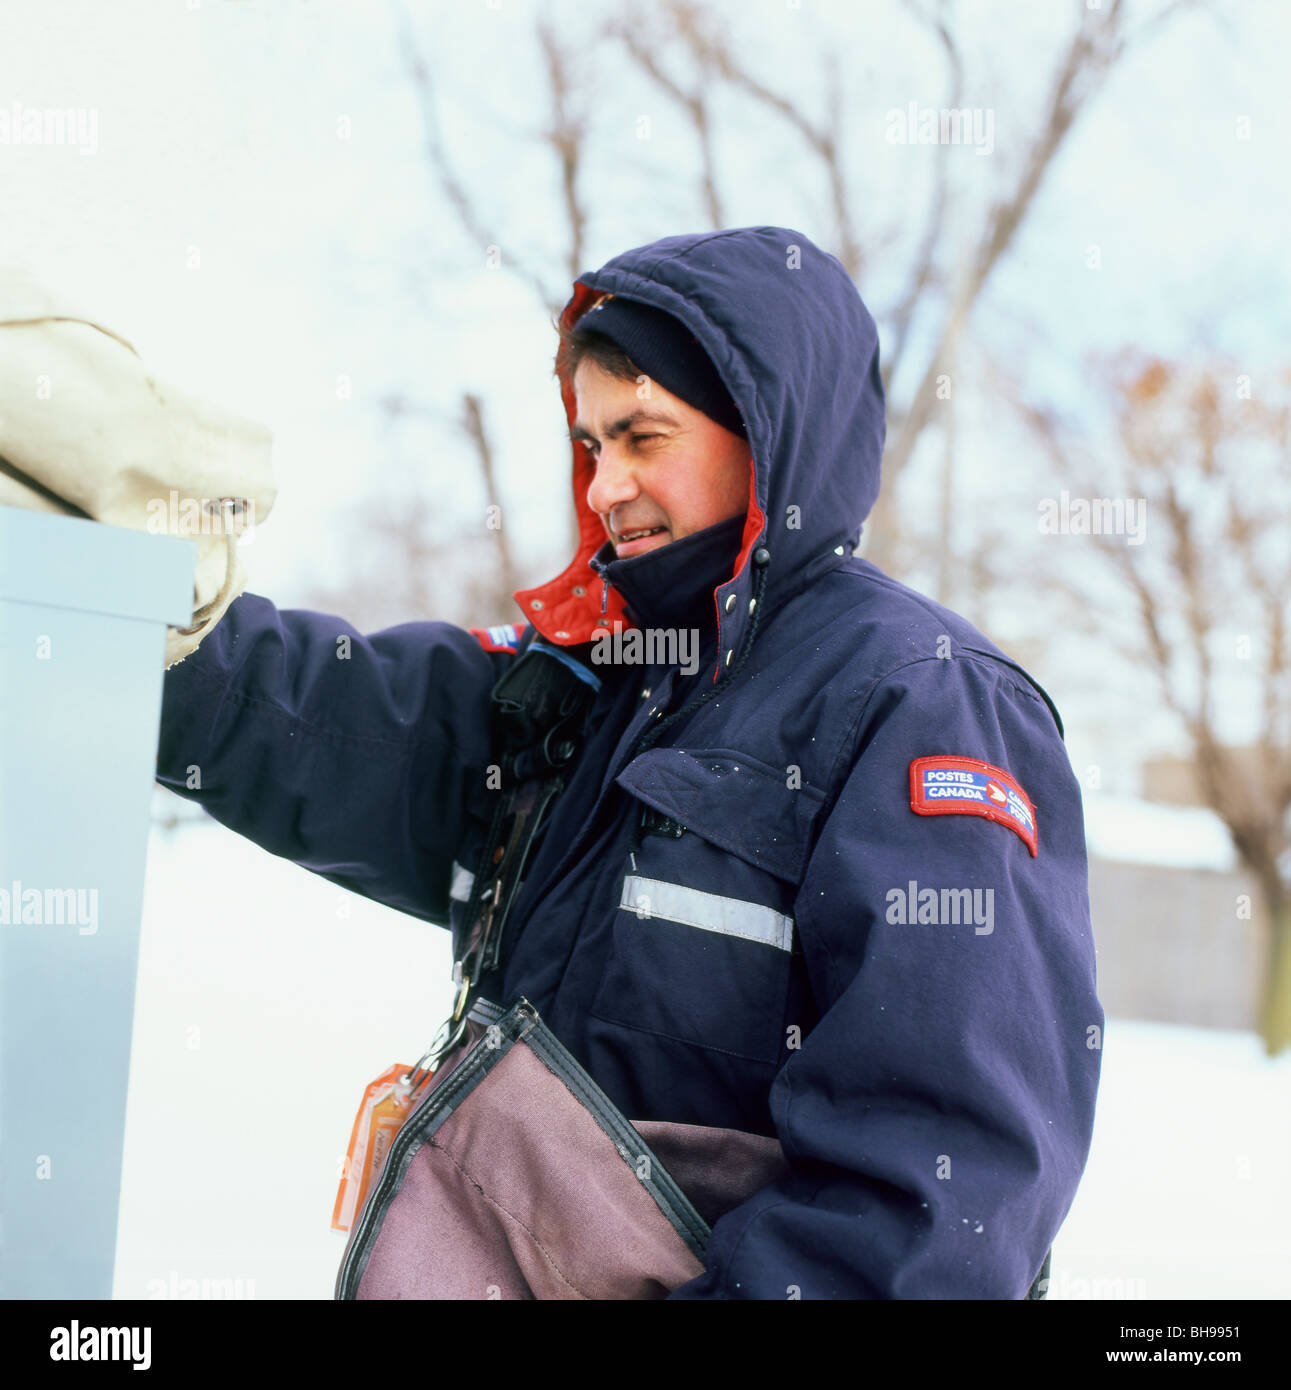 Postman with postal bag at work in winter clothing delivering letters in the snow Ontario Canada KATHY DEWITT - Stock Image